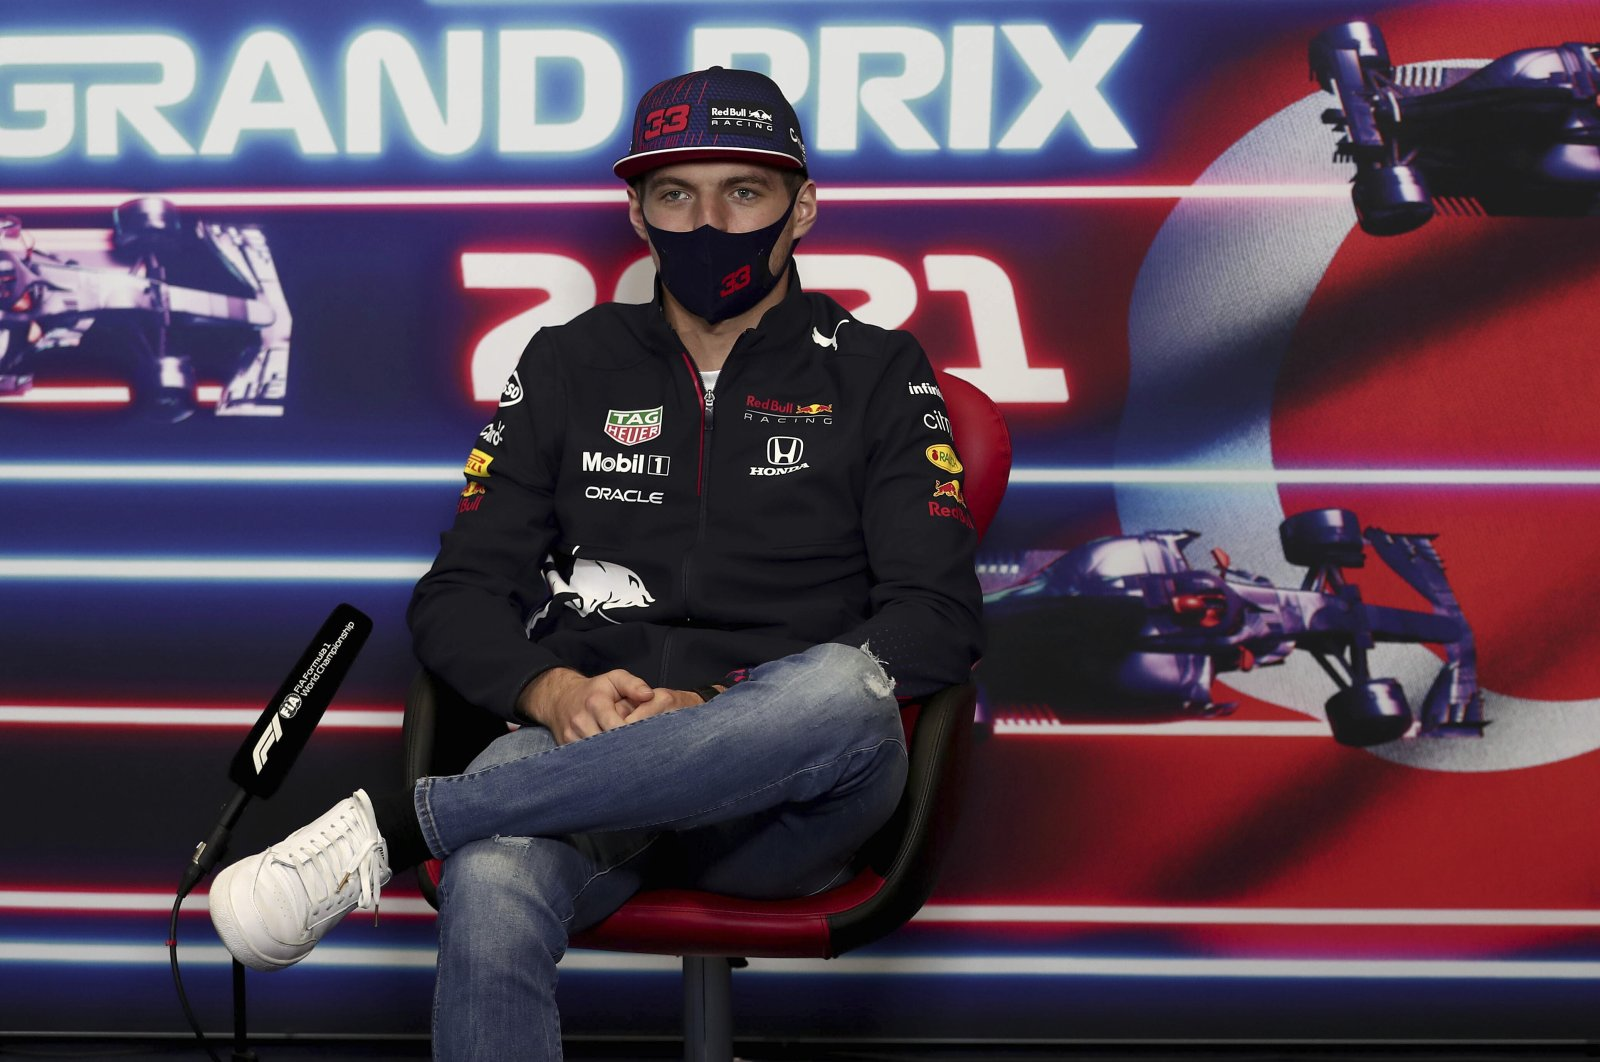 Red Bull driver Max Verstappen speaks during a press conference ahead of the F1 Turkish Grand Prix at the Istanbul Park circuit in Istanbul, Turkey, Oct. 7, 2021. (AP Photo)